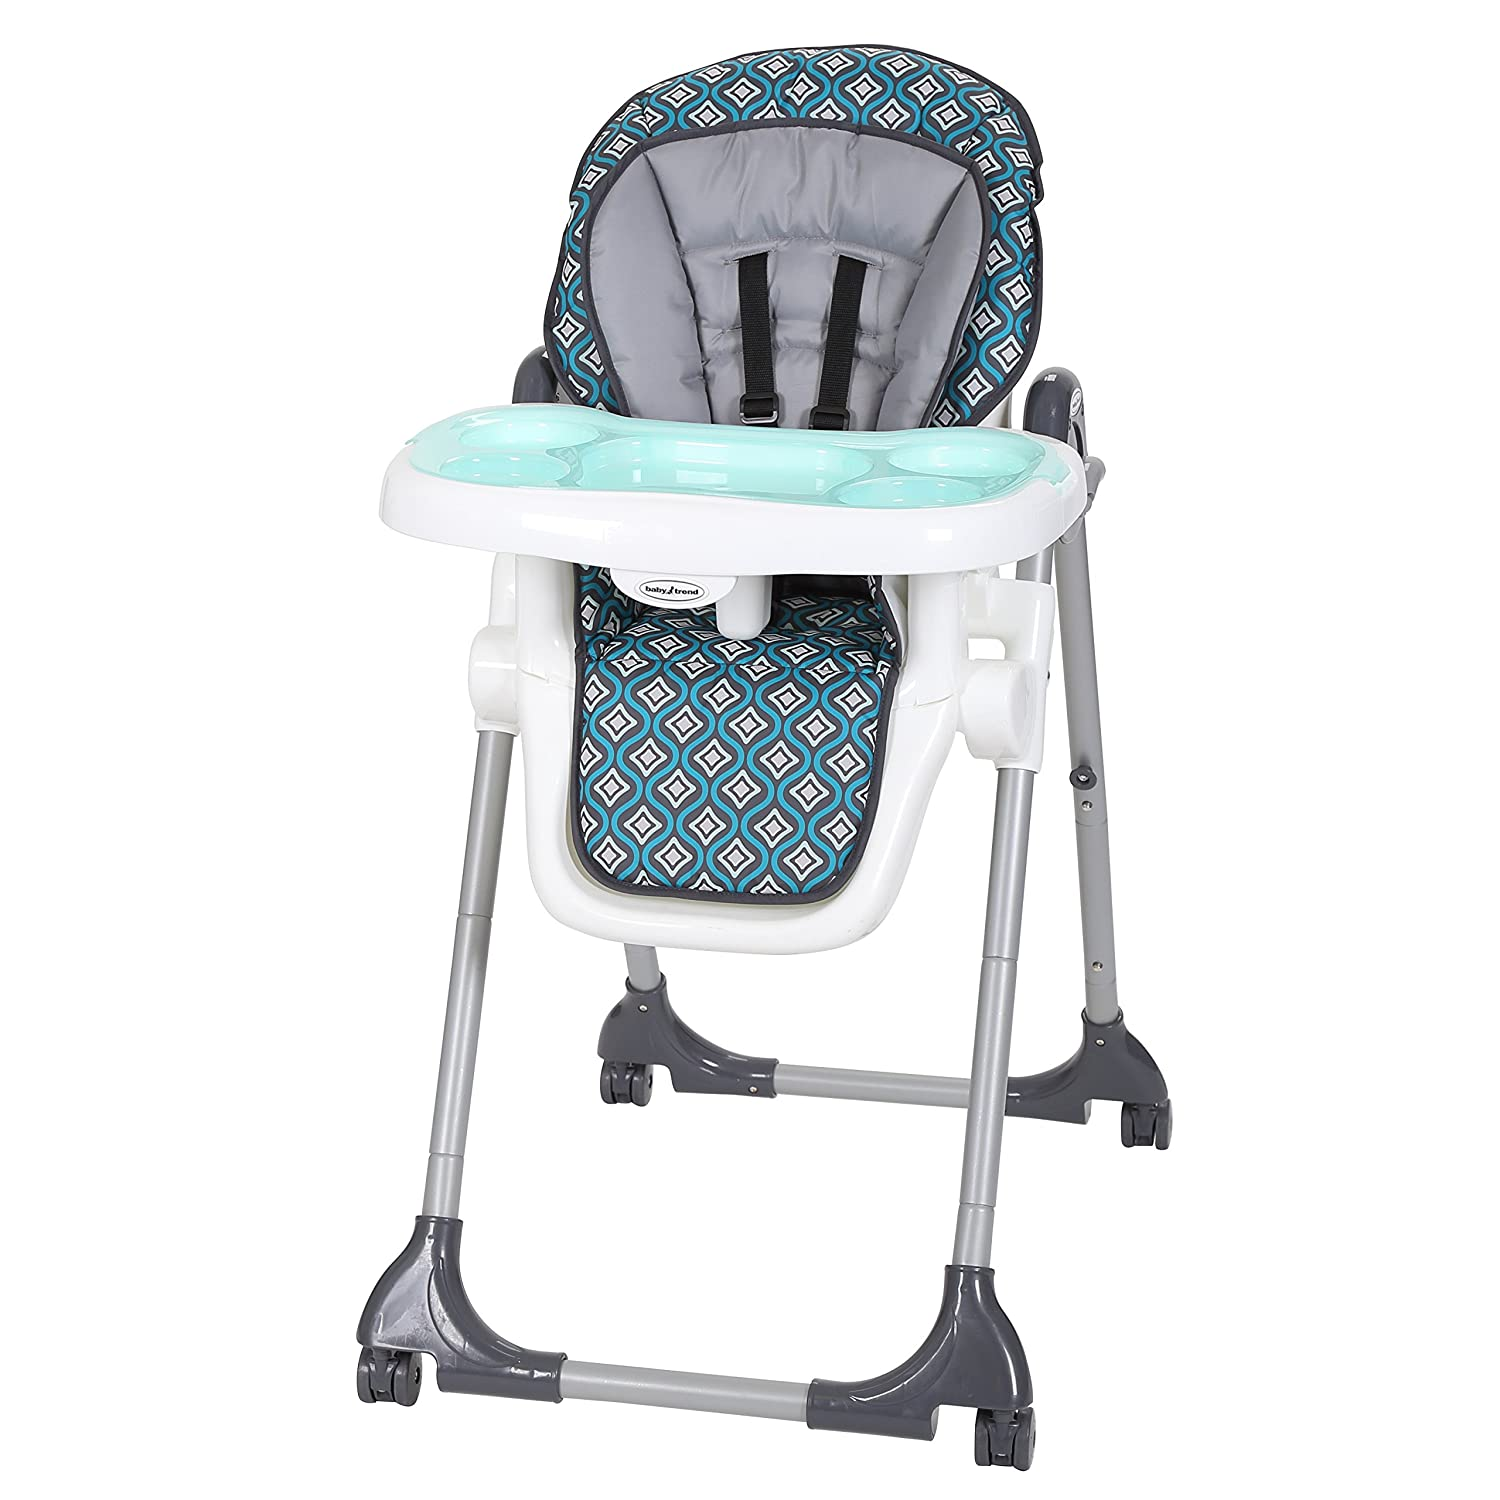 c2064c44ba2a Amazon.com   Baby Trend Deluxe 2-in-1 High Chair